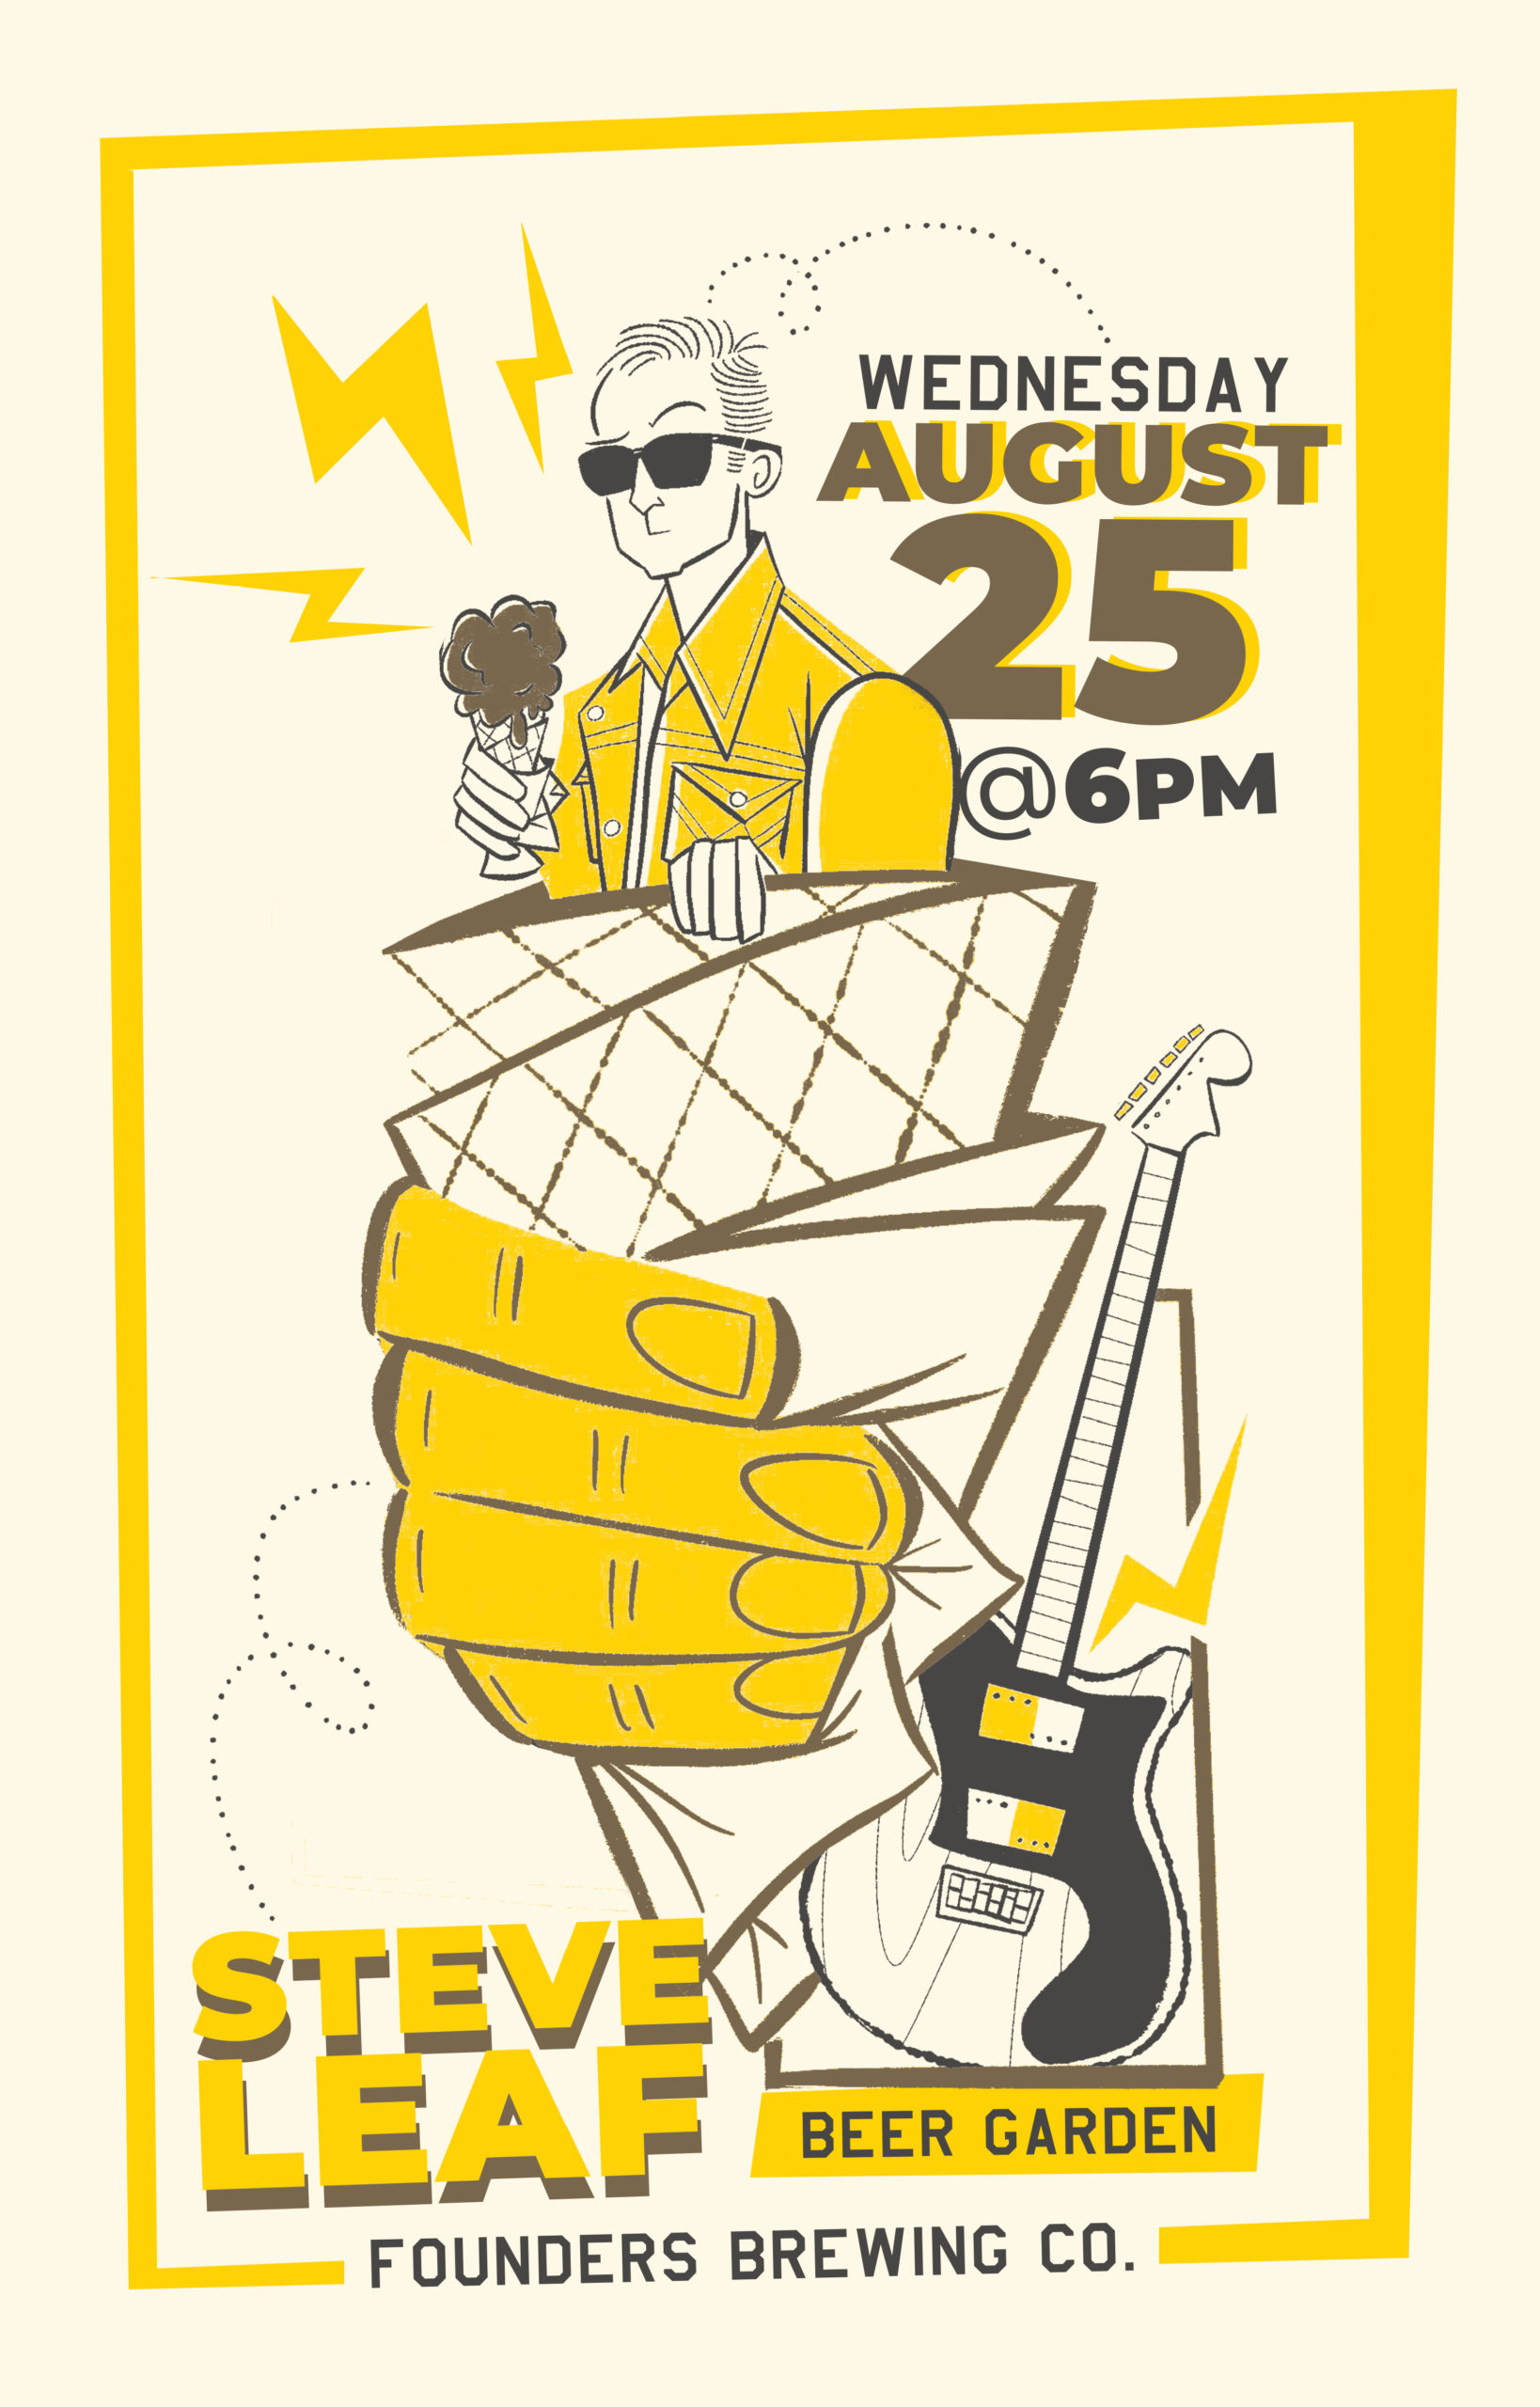 Steve Leaf at Founders Beer Garden on August 25 at 6pm